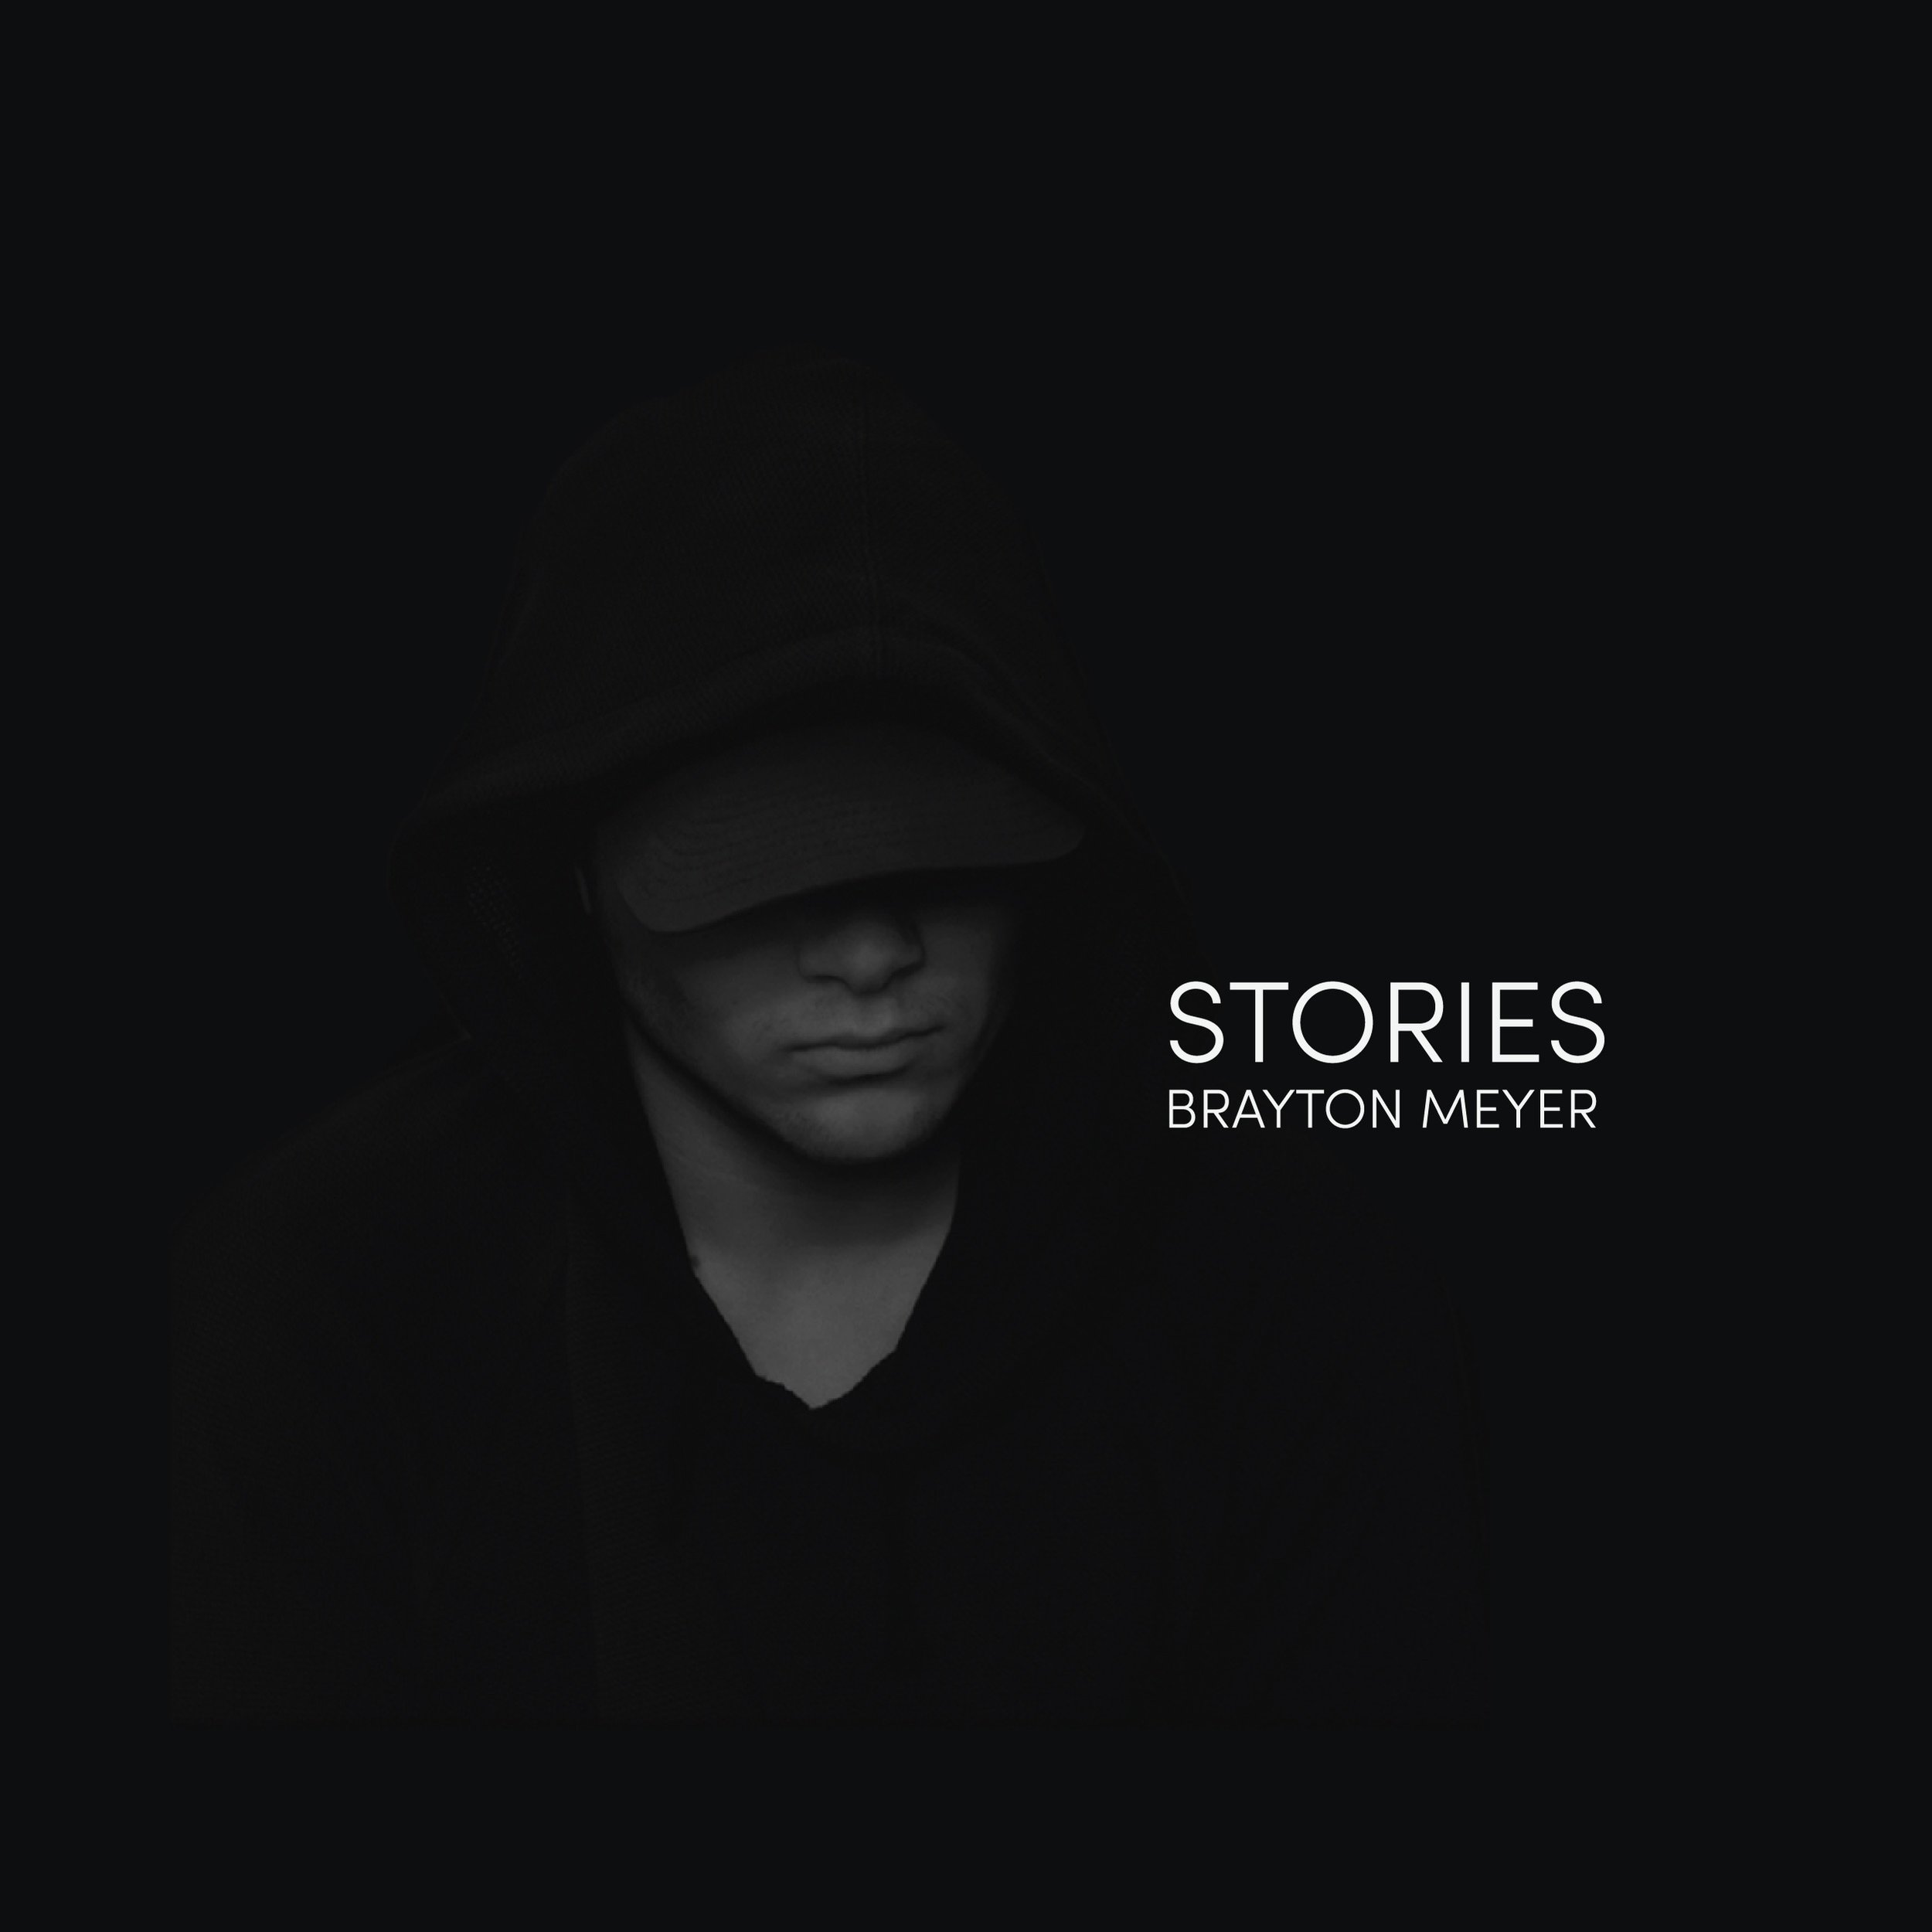 Stories CD - $15 - Intro.Seek Shelter.Explain This.Don't Be Afraid.God.Easy.Help.Young.Fight. Praying.Stories